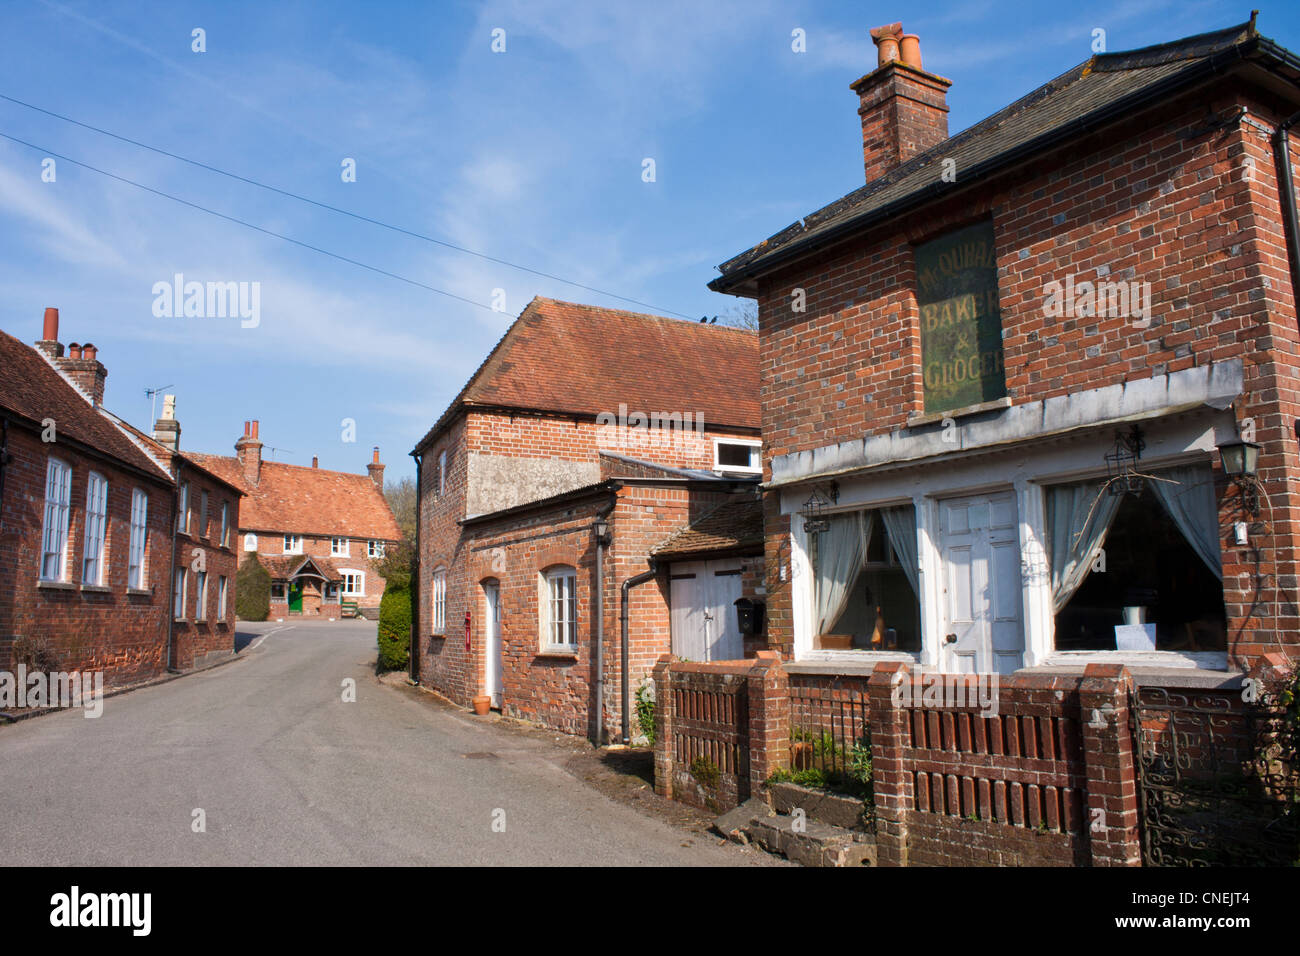 Country houses in the English village of Aldworth, Berkshire. - Stock Image